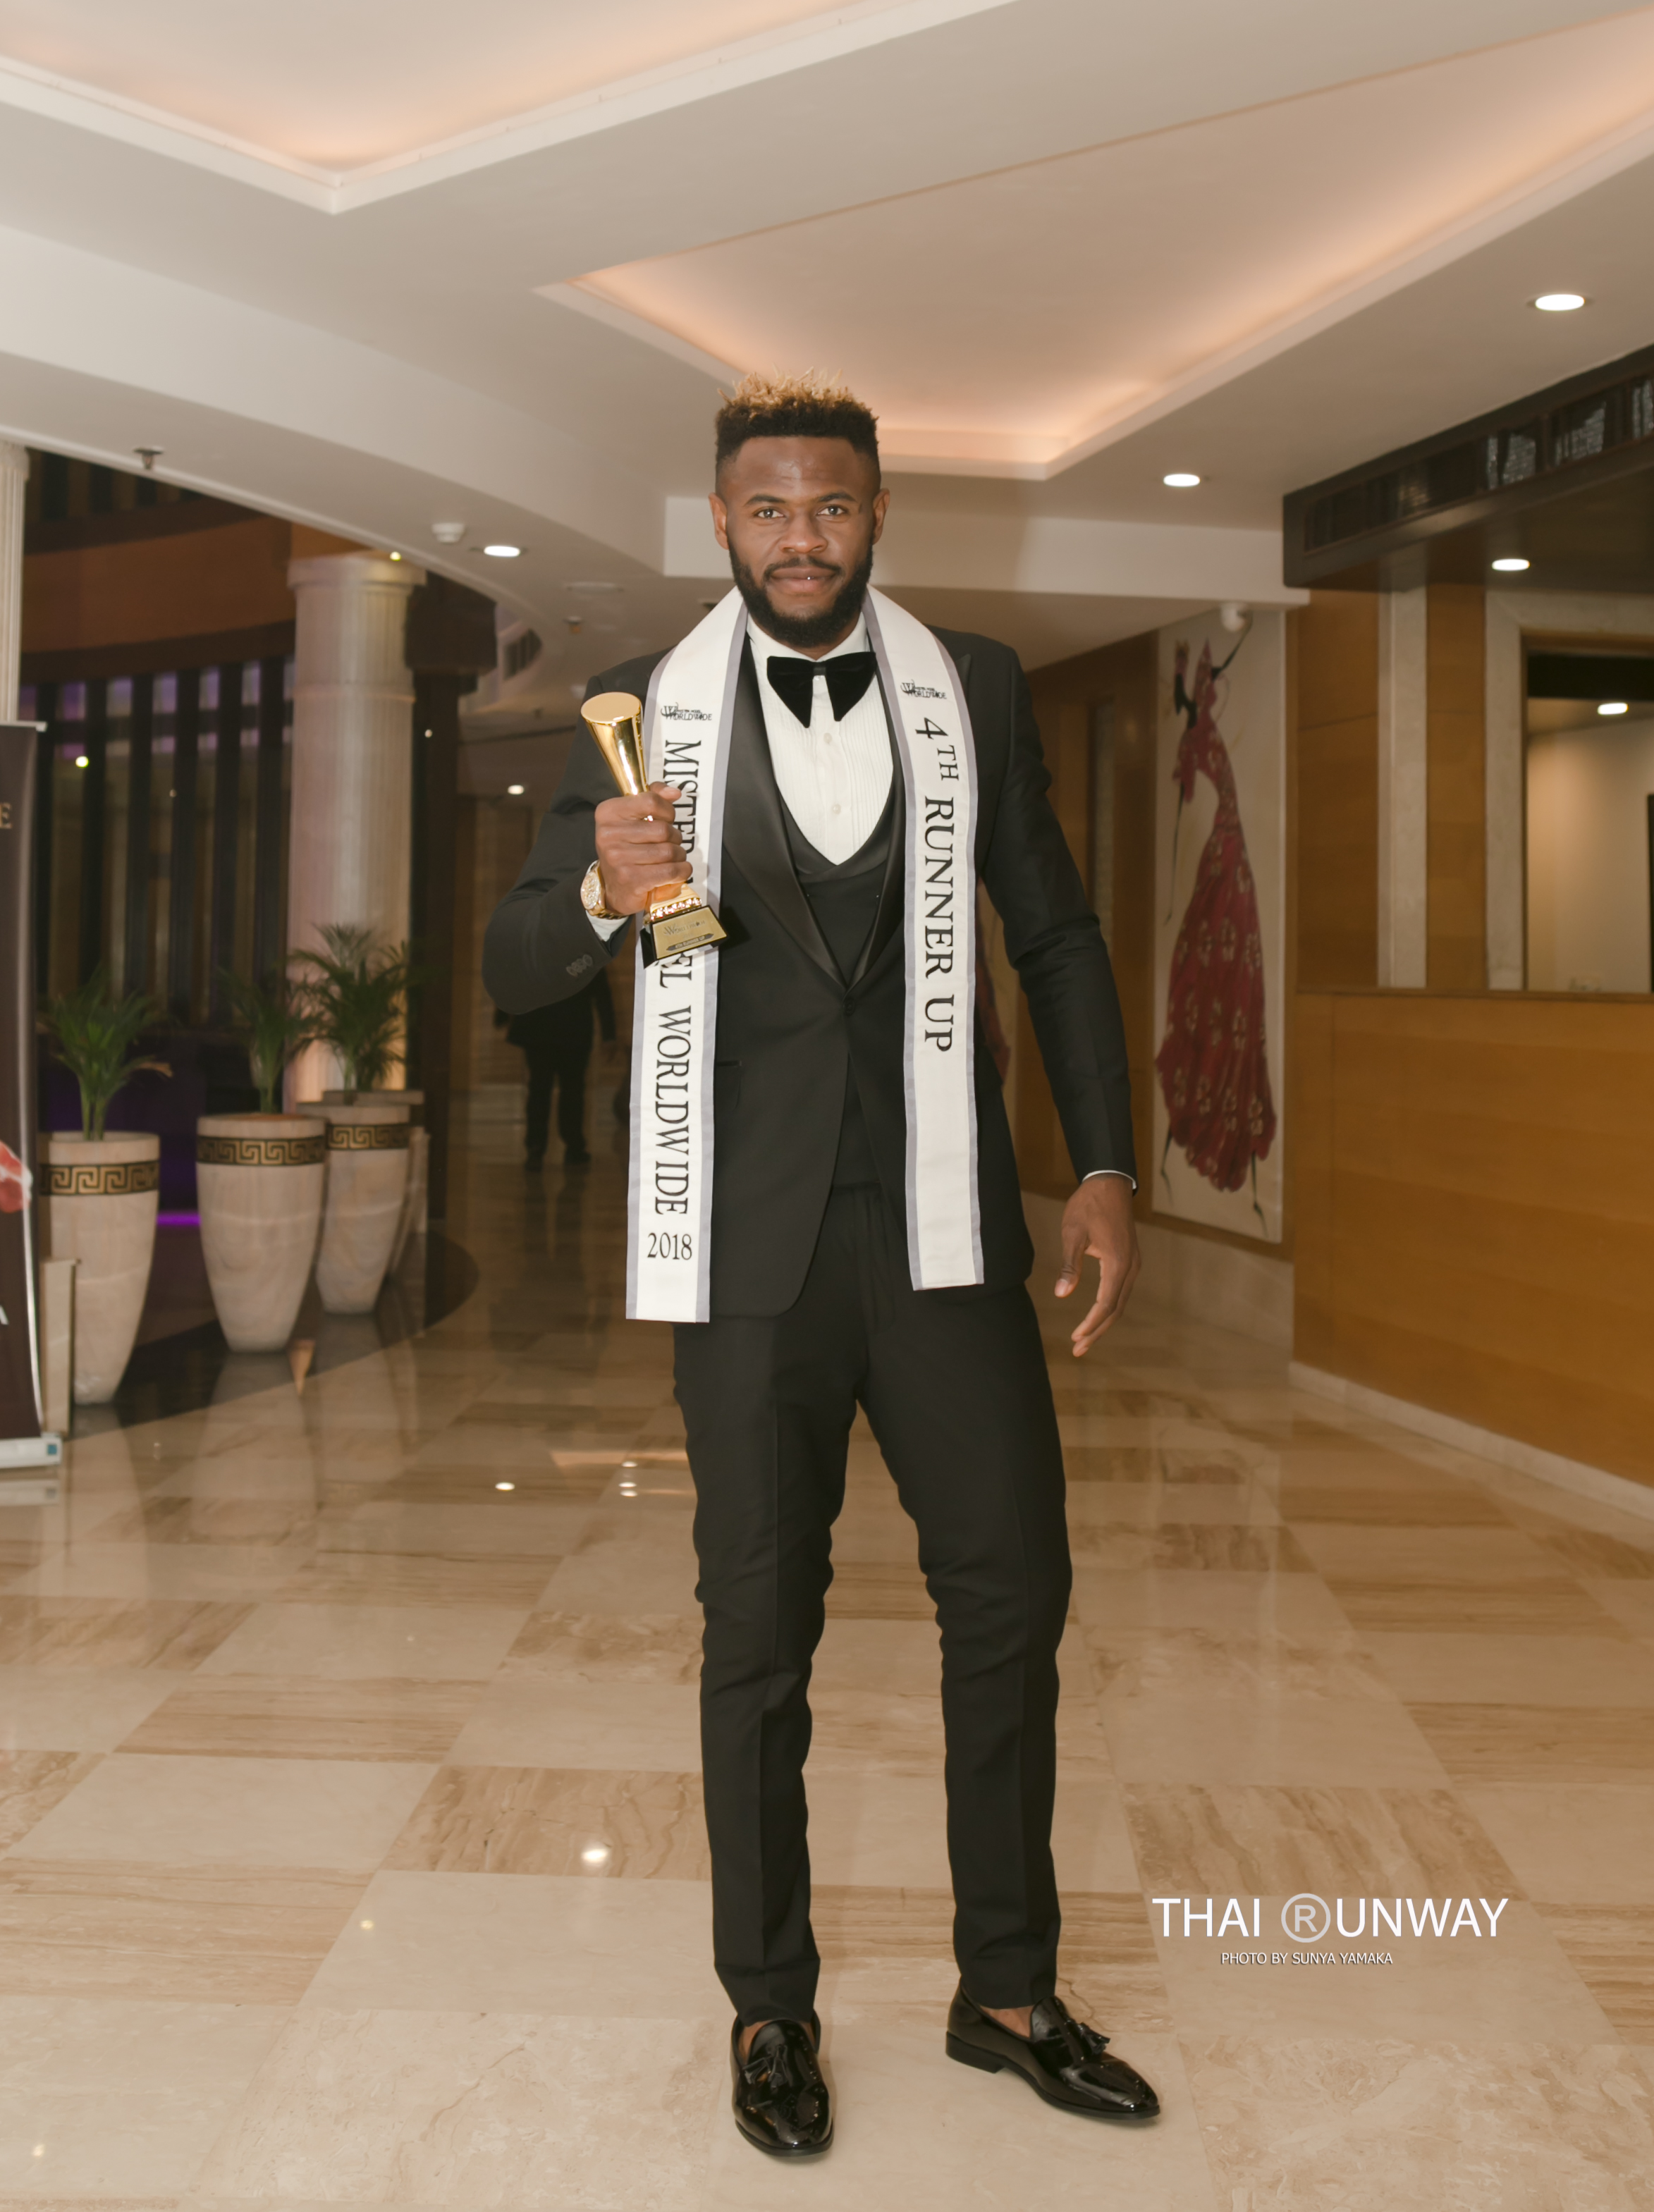 Ogburie Pascal after winning the fourth runner up title and Best in Formal wear award at Mister Model Worldwide 2018 competition.  Picture by Thai Runway / Sunya Yamaka.